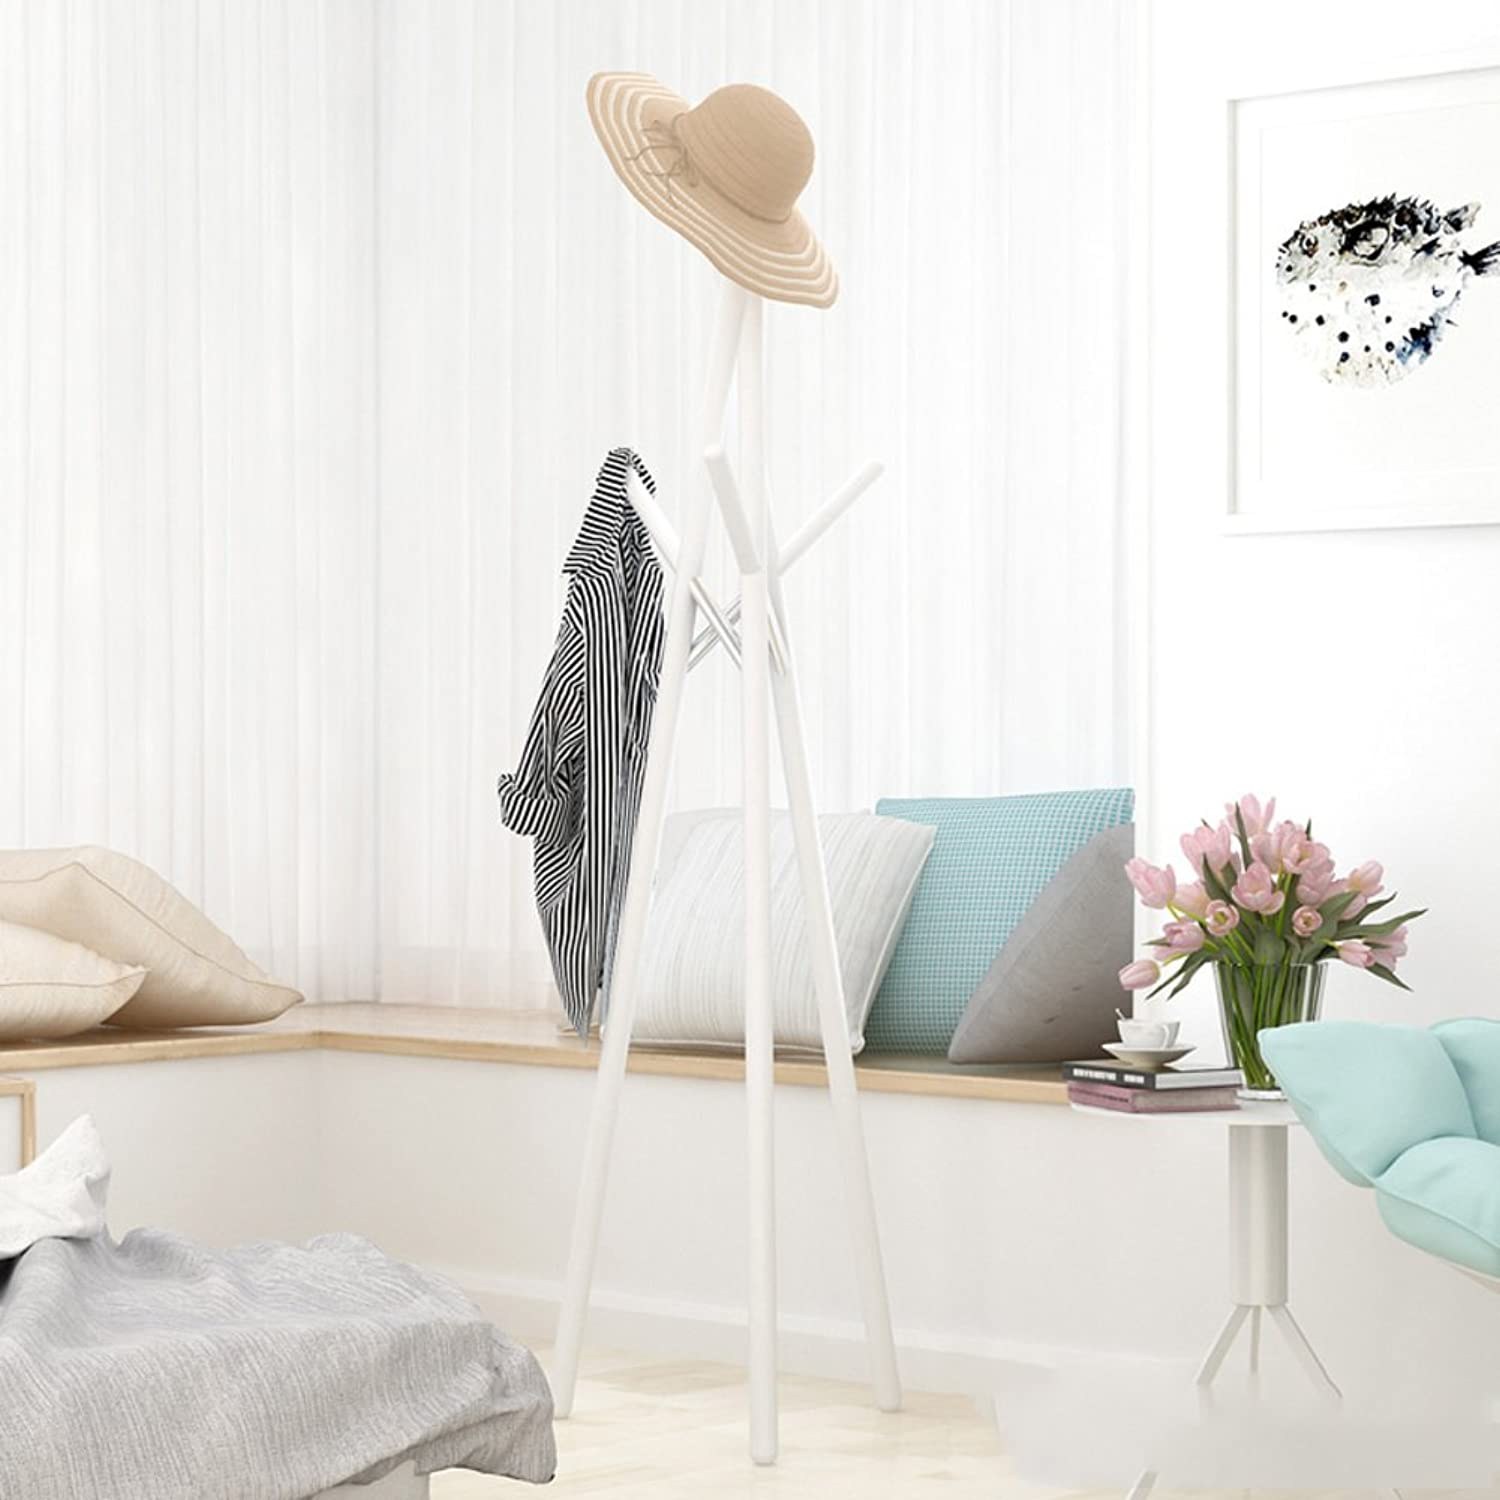 D&L Solid Wood Multifunction Coat Stand Garment Rack Hook Hanger,Sturdy Construction Modern Tree Branch Style-I 178cm